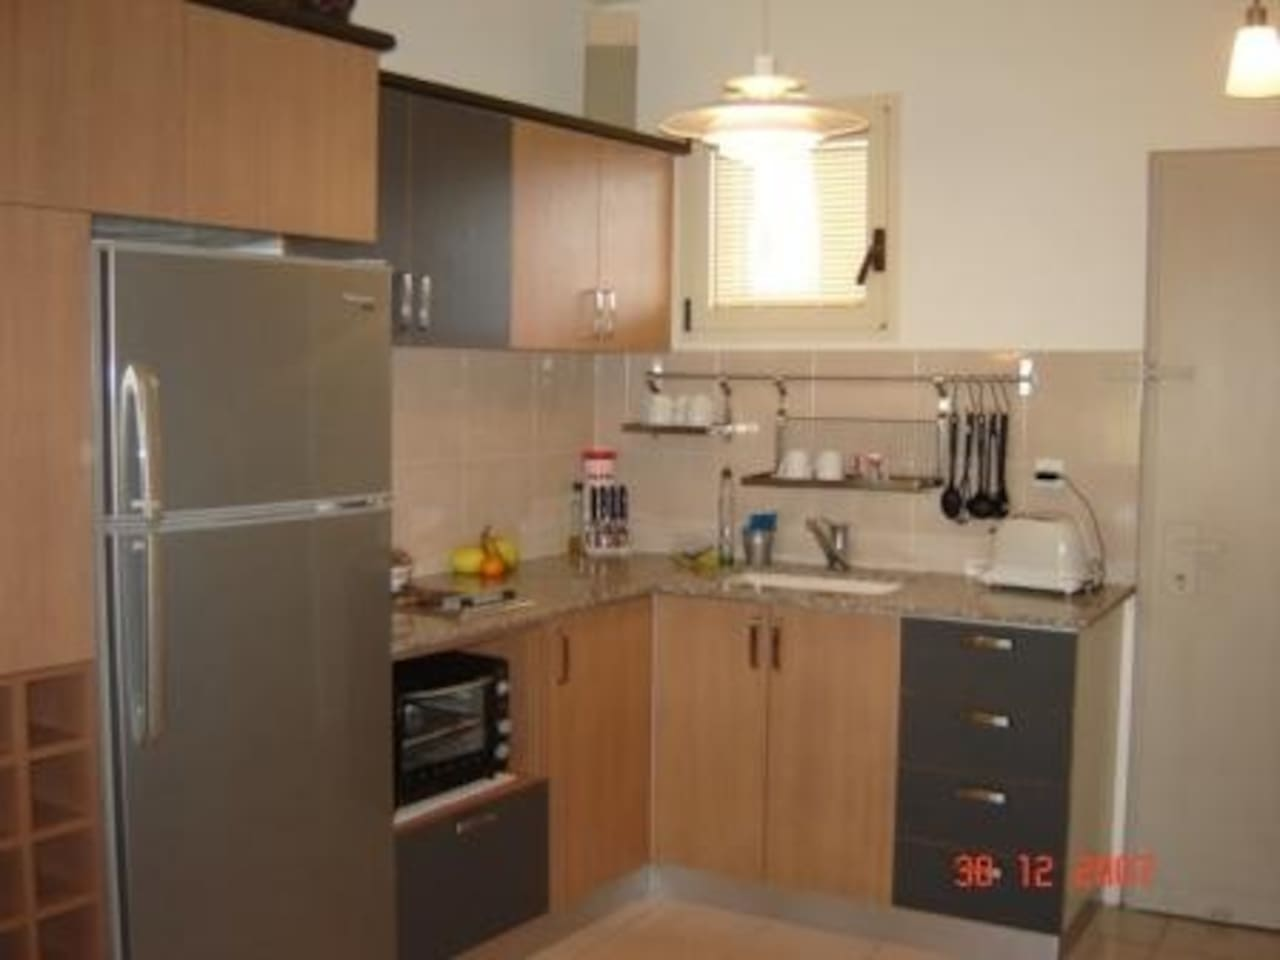 Apartment Great 2 BR Flat right next to the sea in caesarea photo 25937102